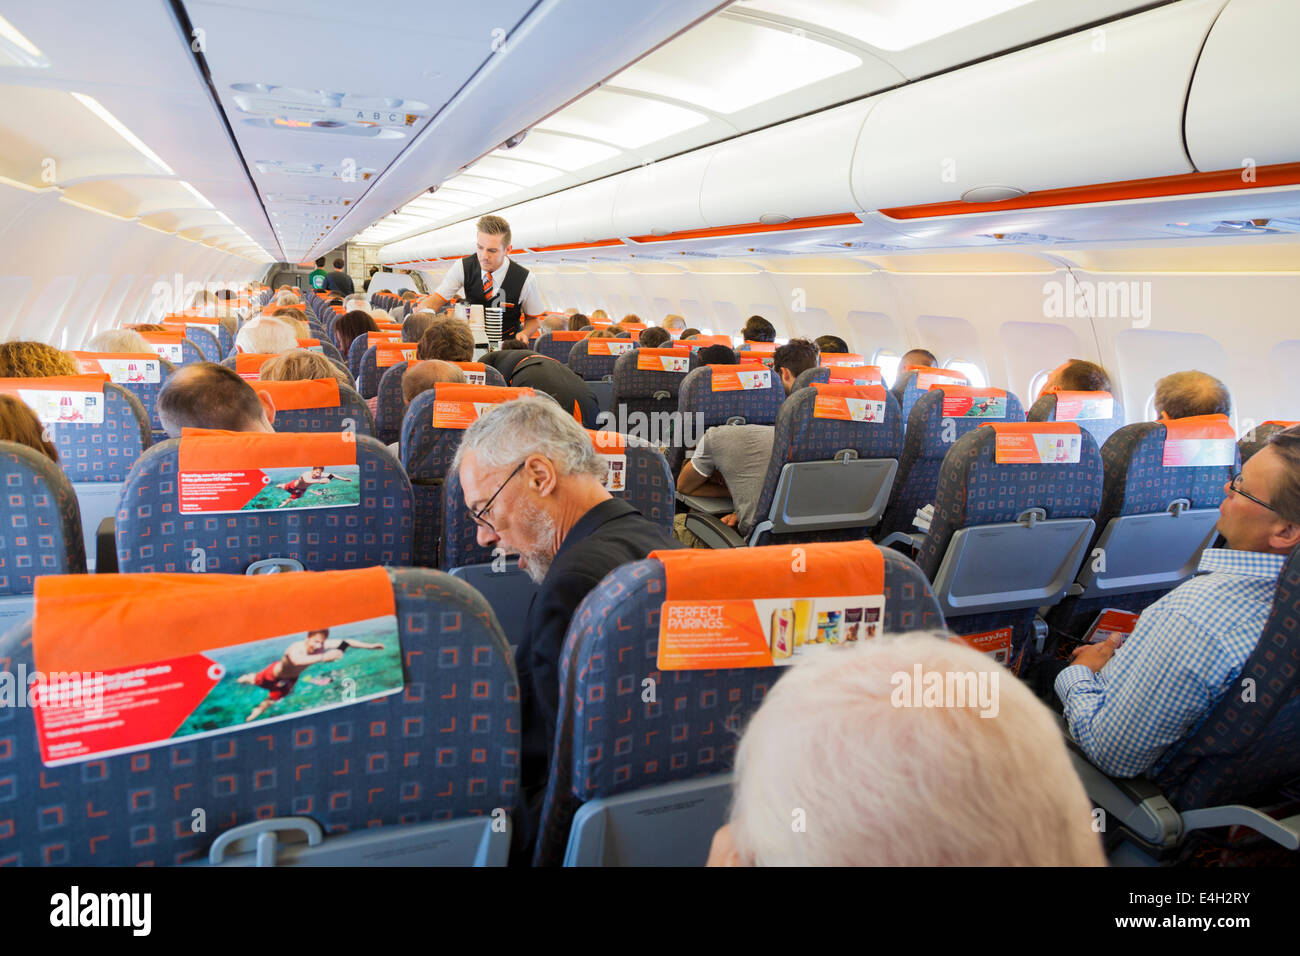 Steward serving passengers in flight in an Easyjet Aircraft. - Stock Image